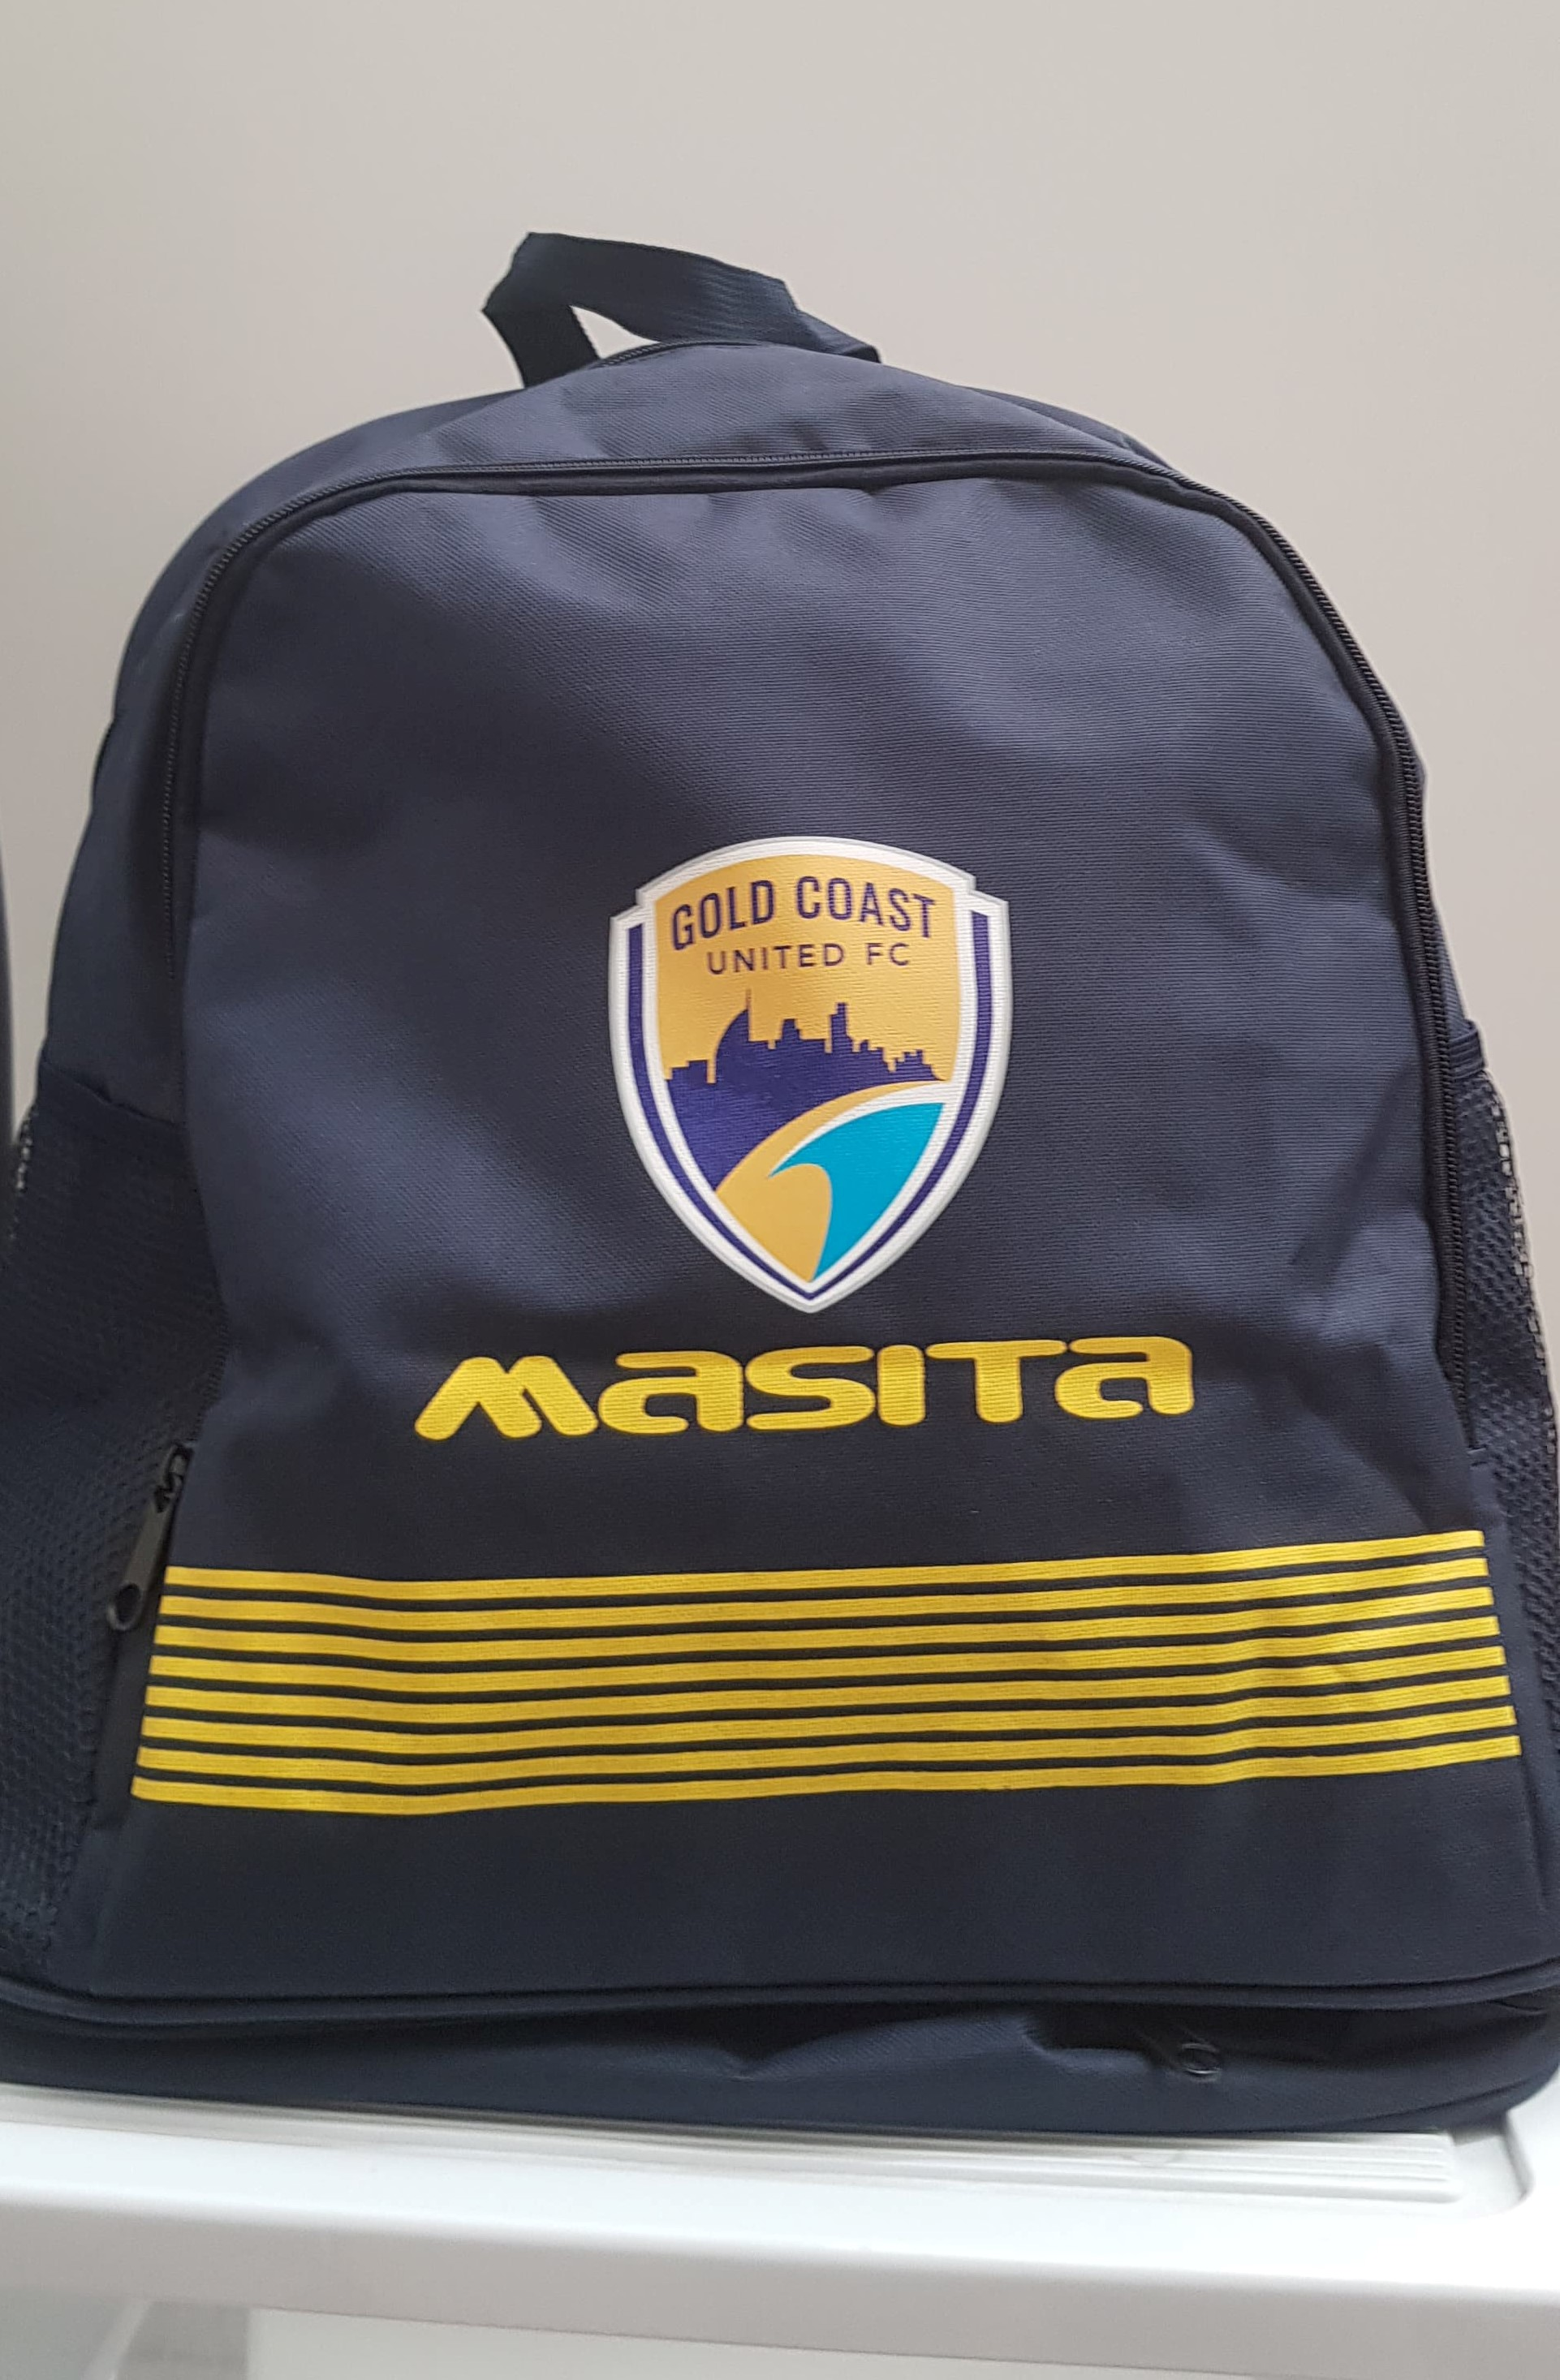 Gold Coast United Brasil Backpack With Shoe Compartment